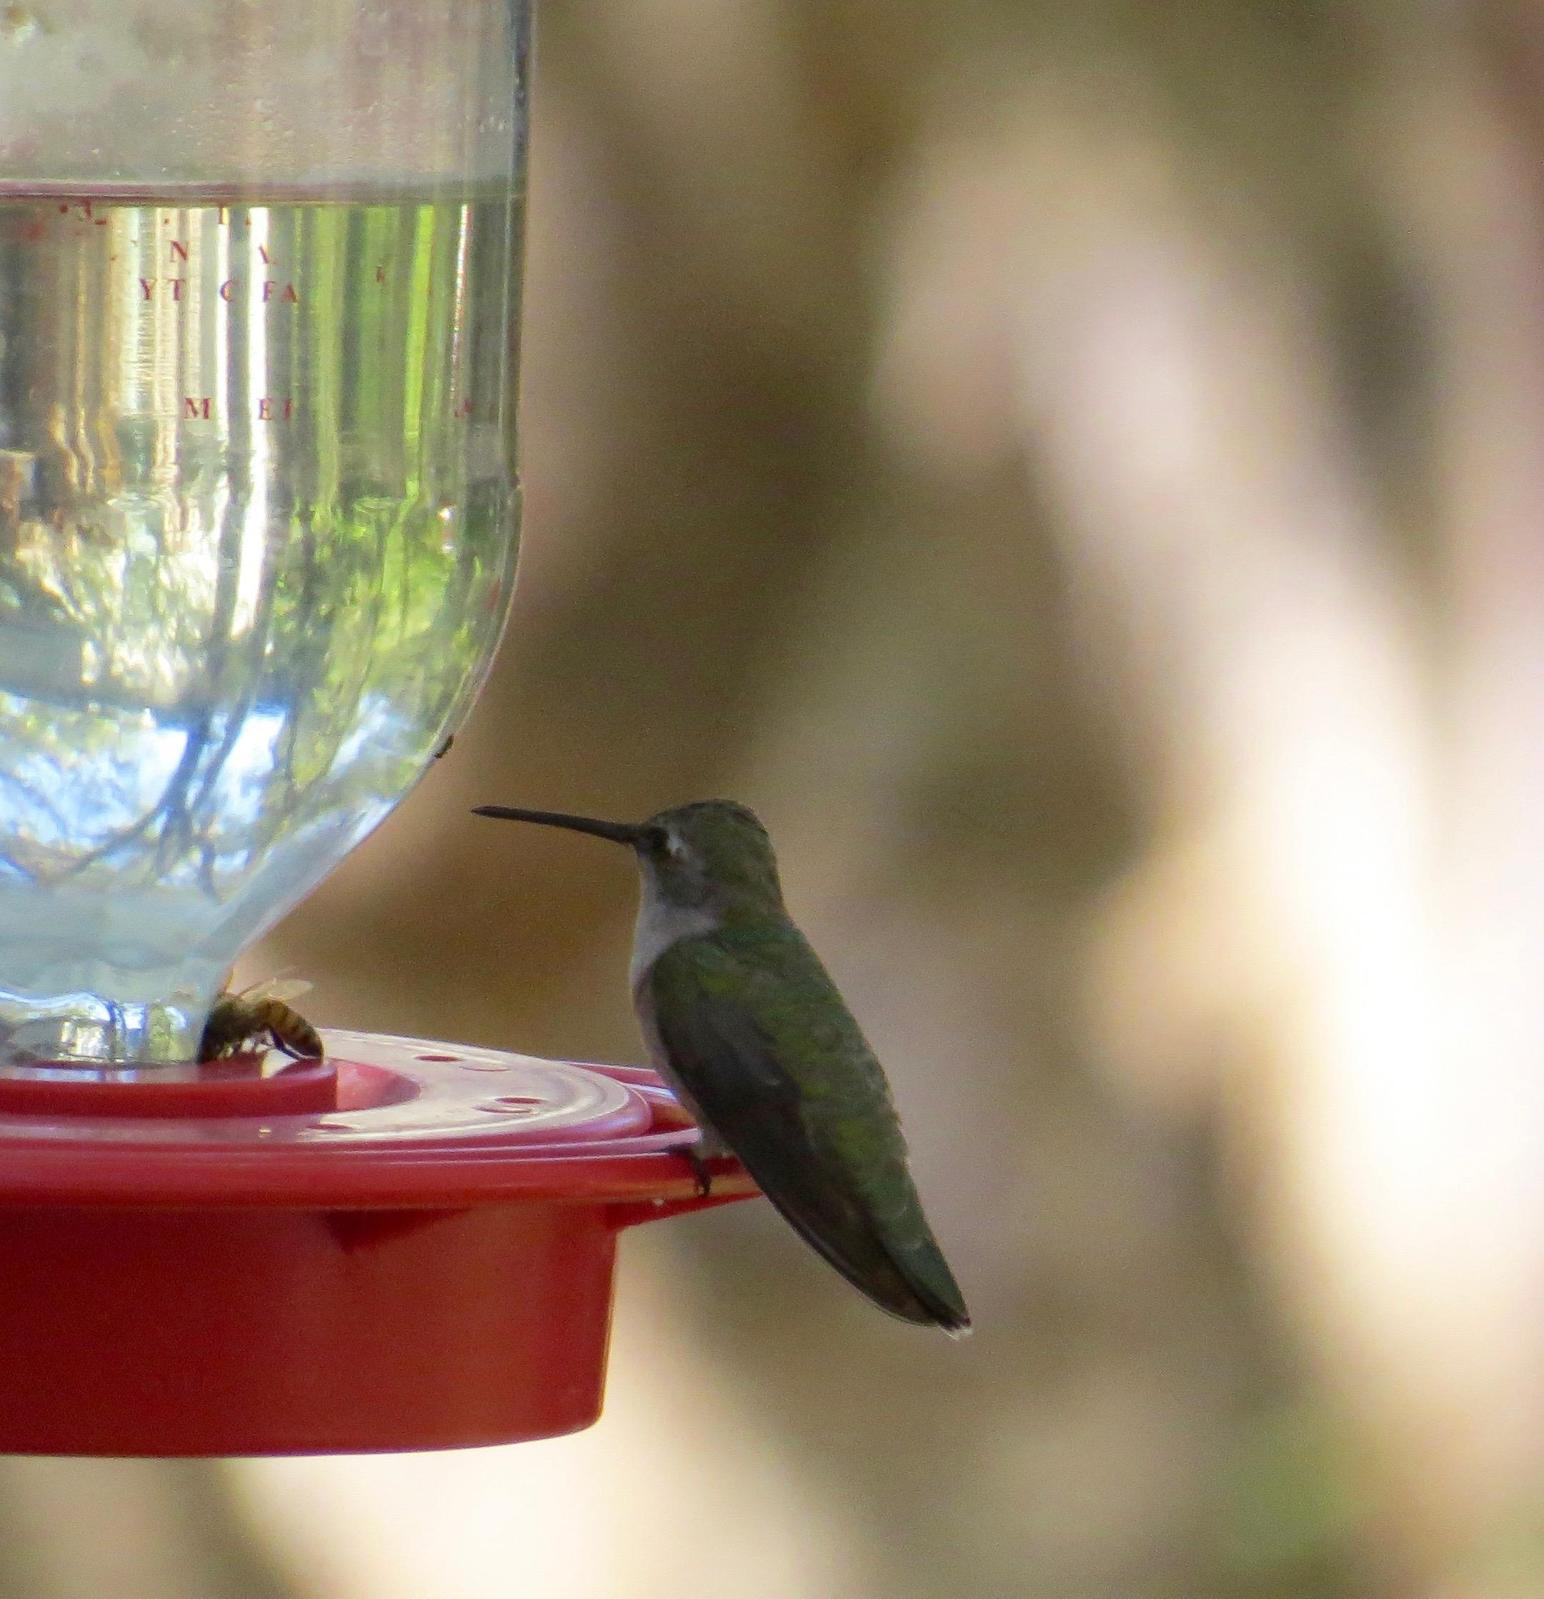 Broad-tailed Hummingbird Photo by Don Glasco